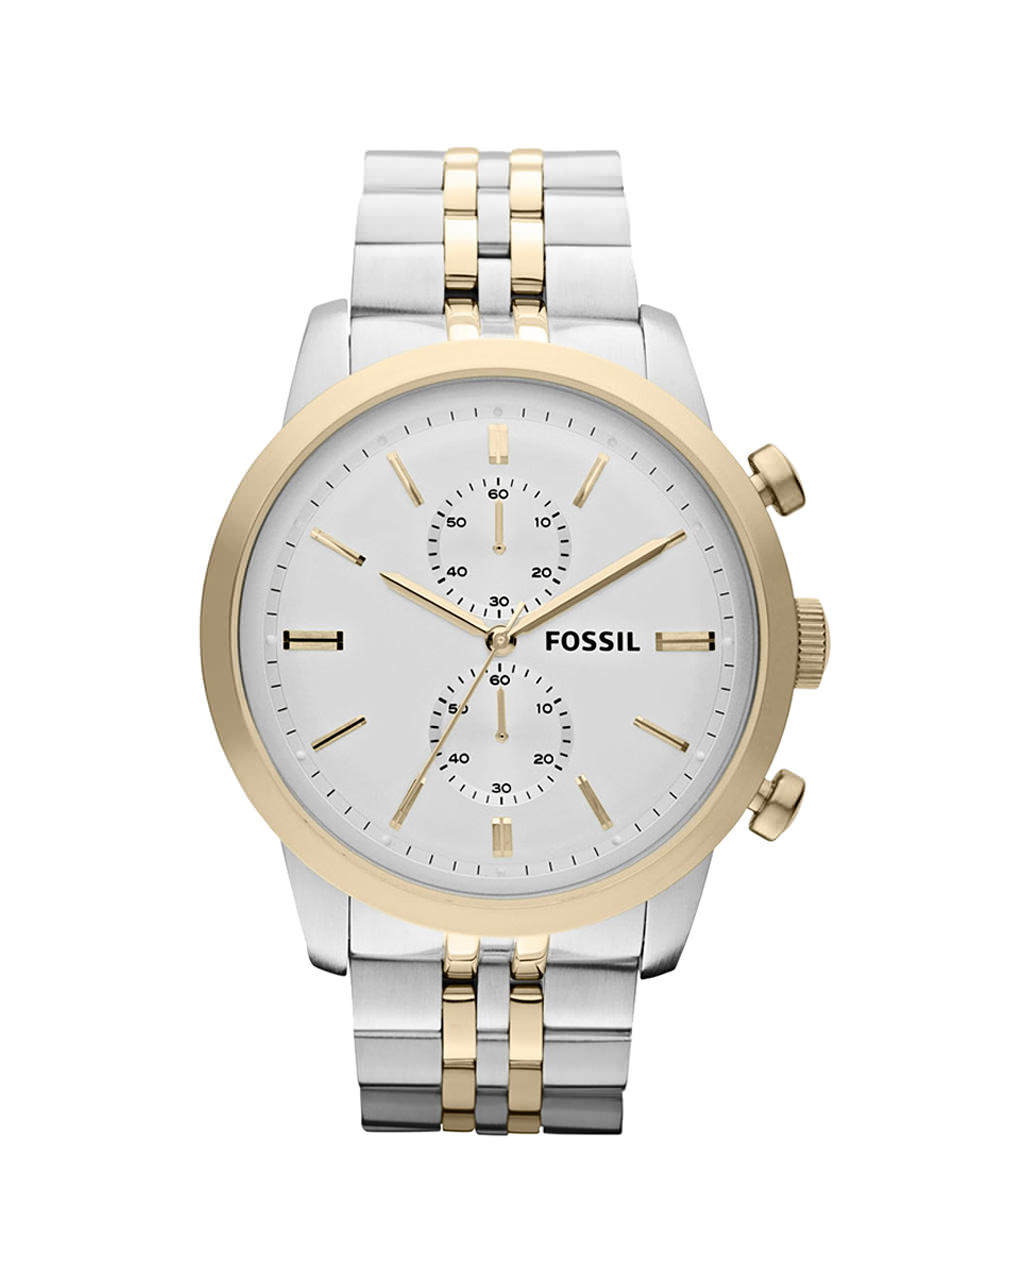 FOSSIL Townsman Chrono Silver Dial Two-Tone Steel Men FS4785   brands fossil